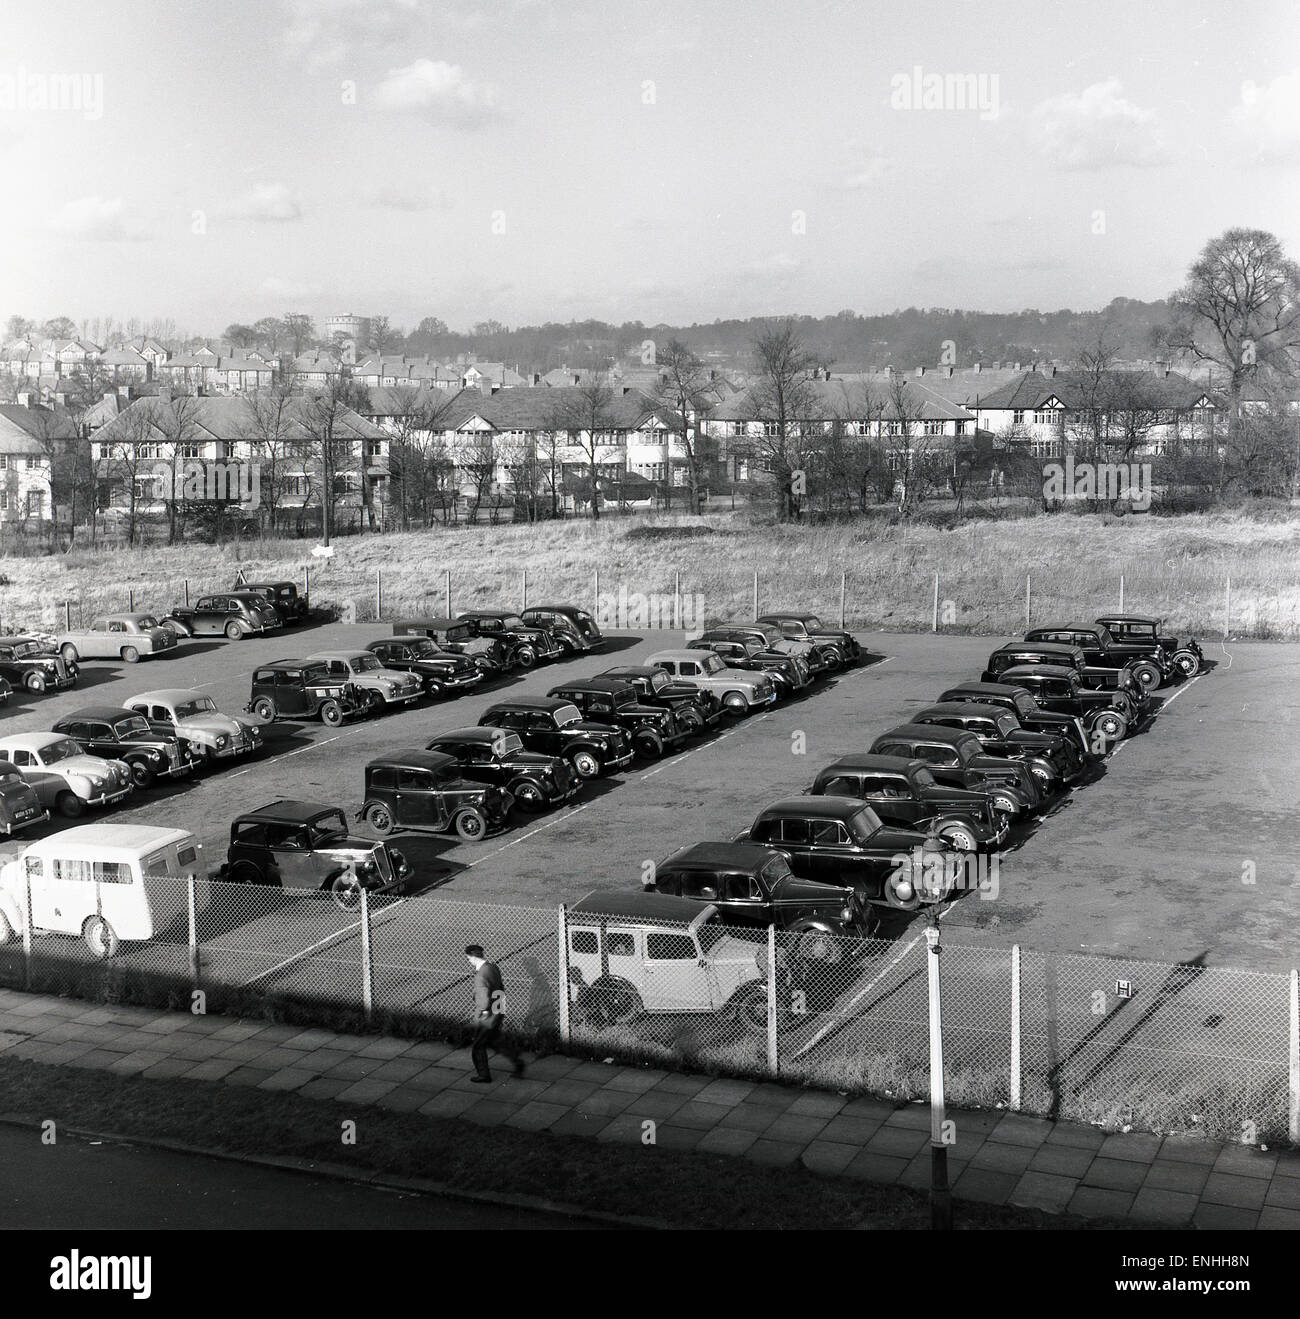 historical, 1950s, rows of motor cars parked on a piece of empty suburban land. - Stock Image